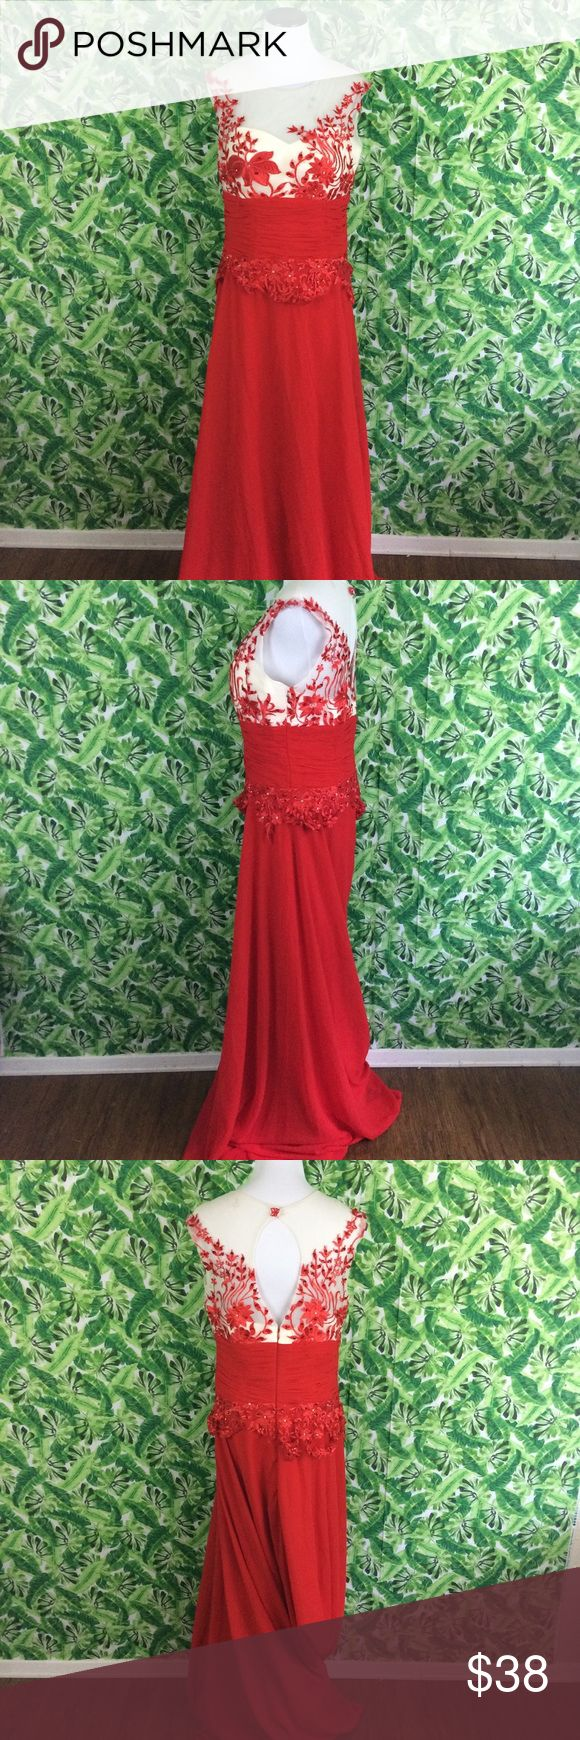 Red and cream formal dress with appliqué flowers 8 Red and white /cream formal dress. Size 8. Unbranded. Measures 19 inches across bust 16 inches across waist and 65 inches from shoulder to hem. Previously owned no holes tears or stains unbranded Dresses